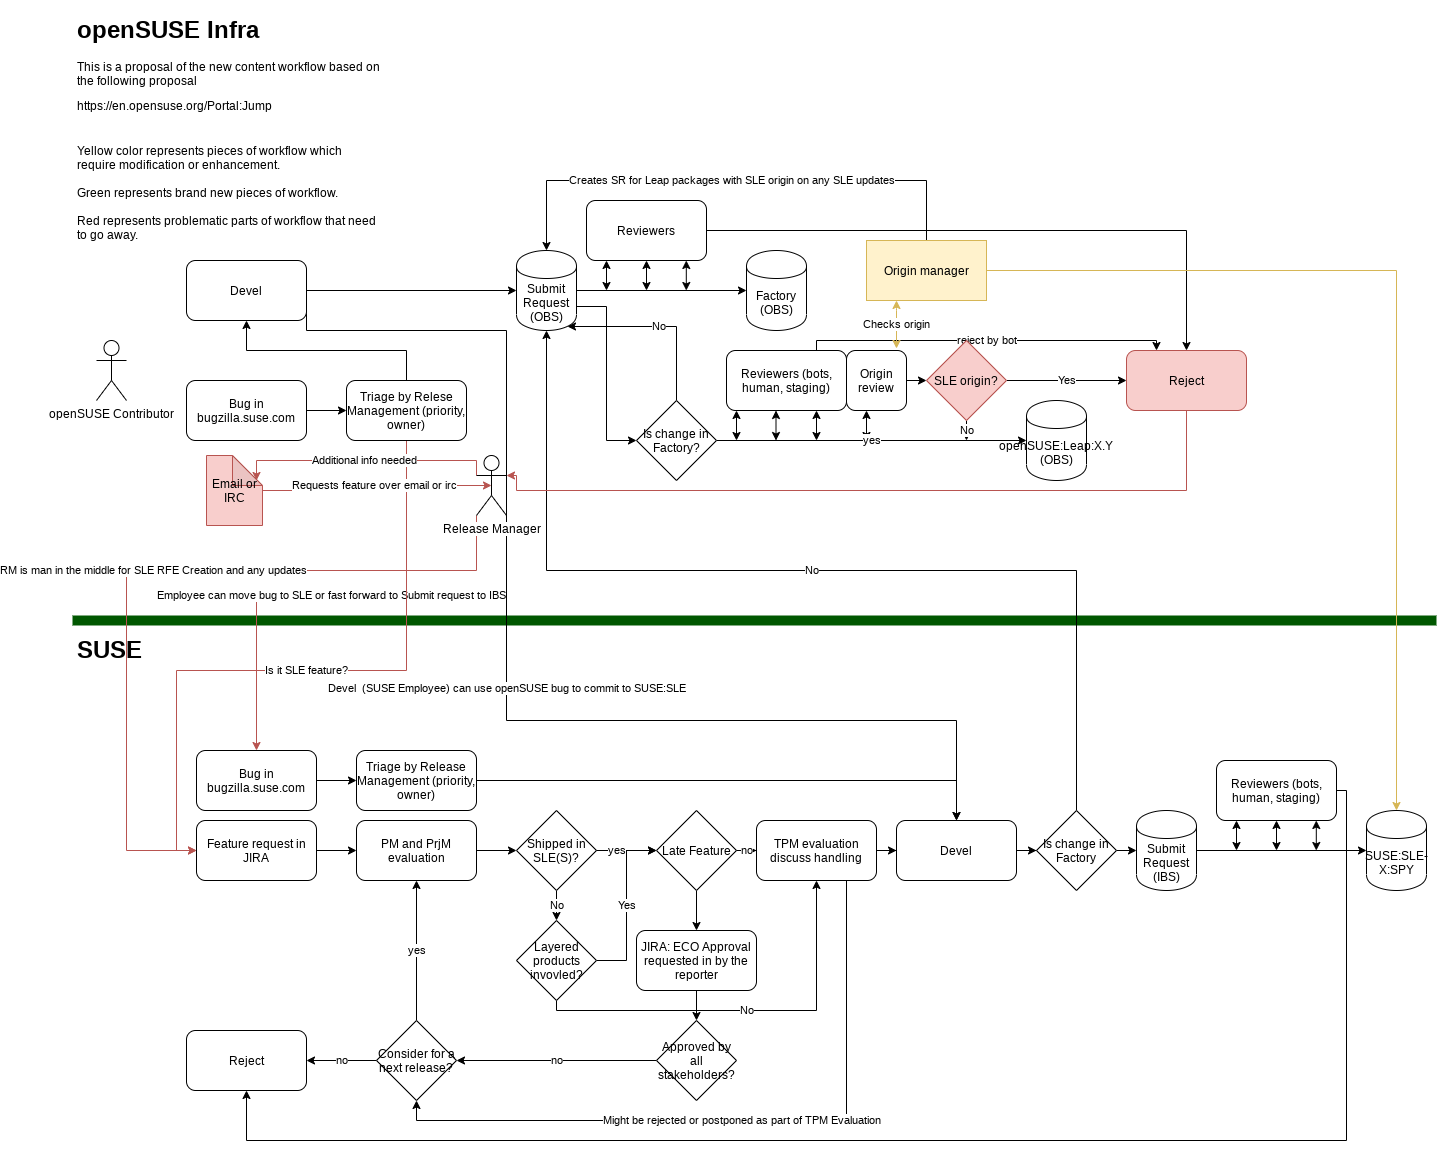 OpenSUSE-current-content-workflow.png